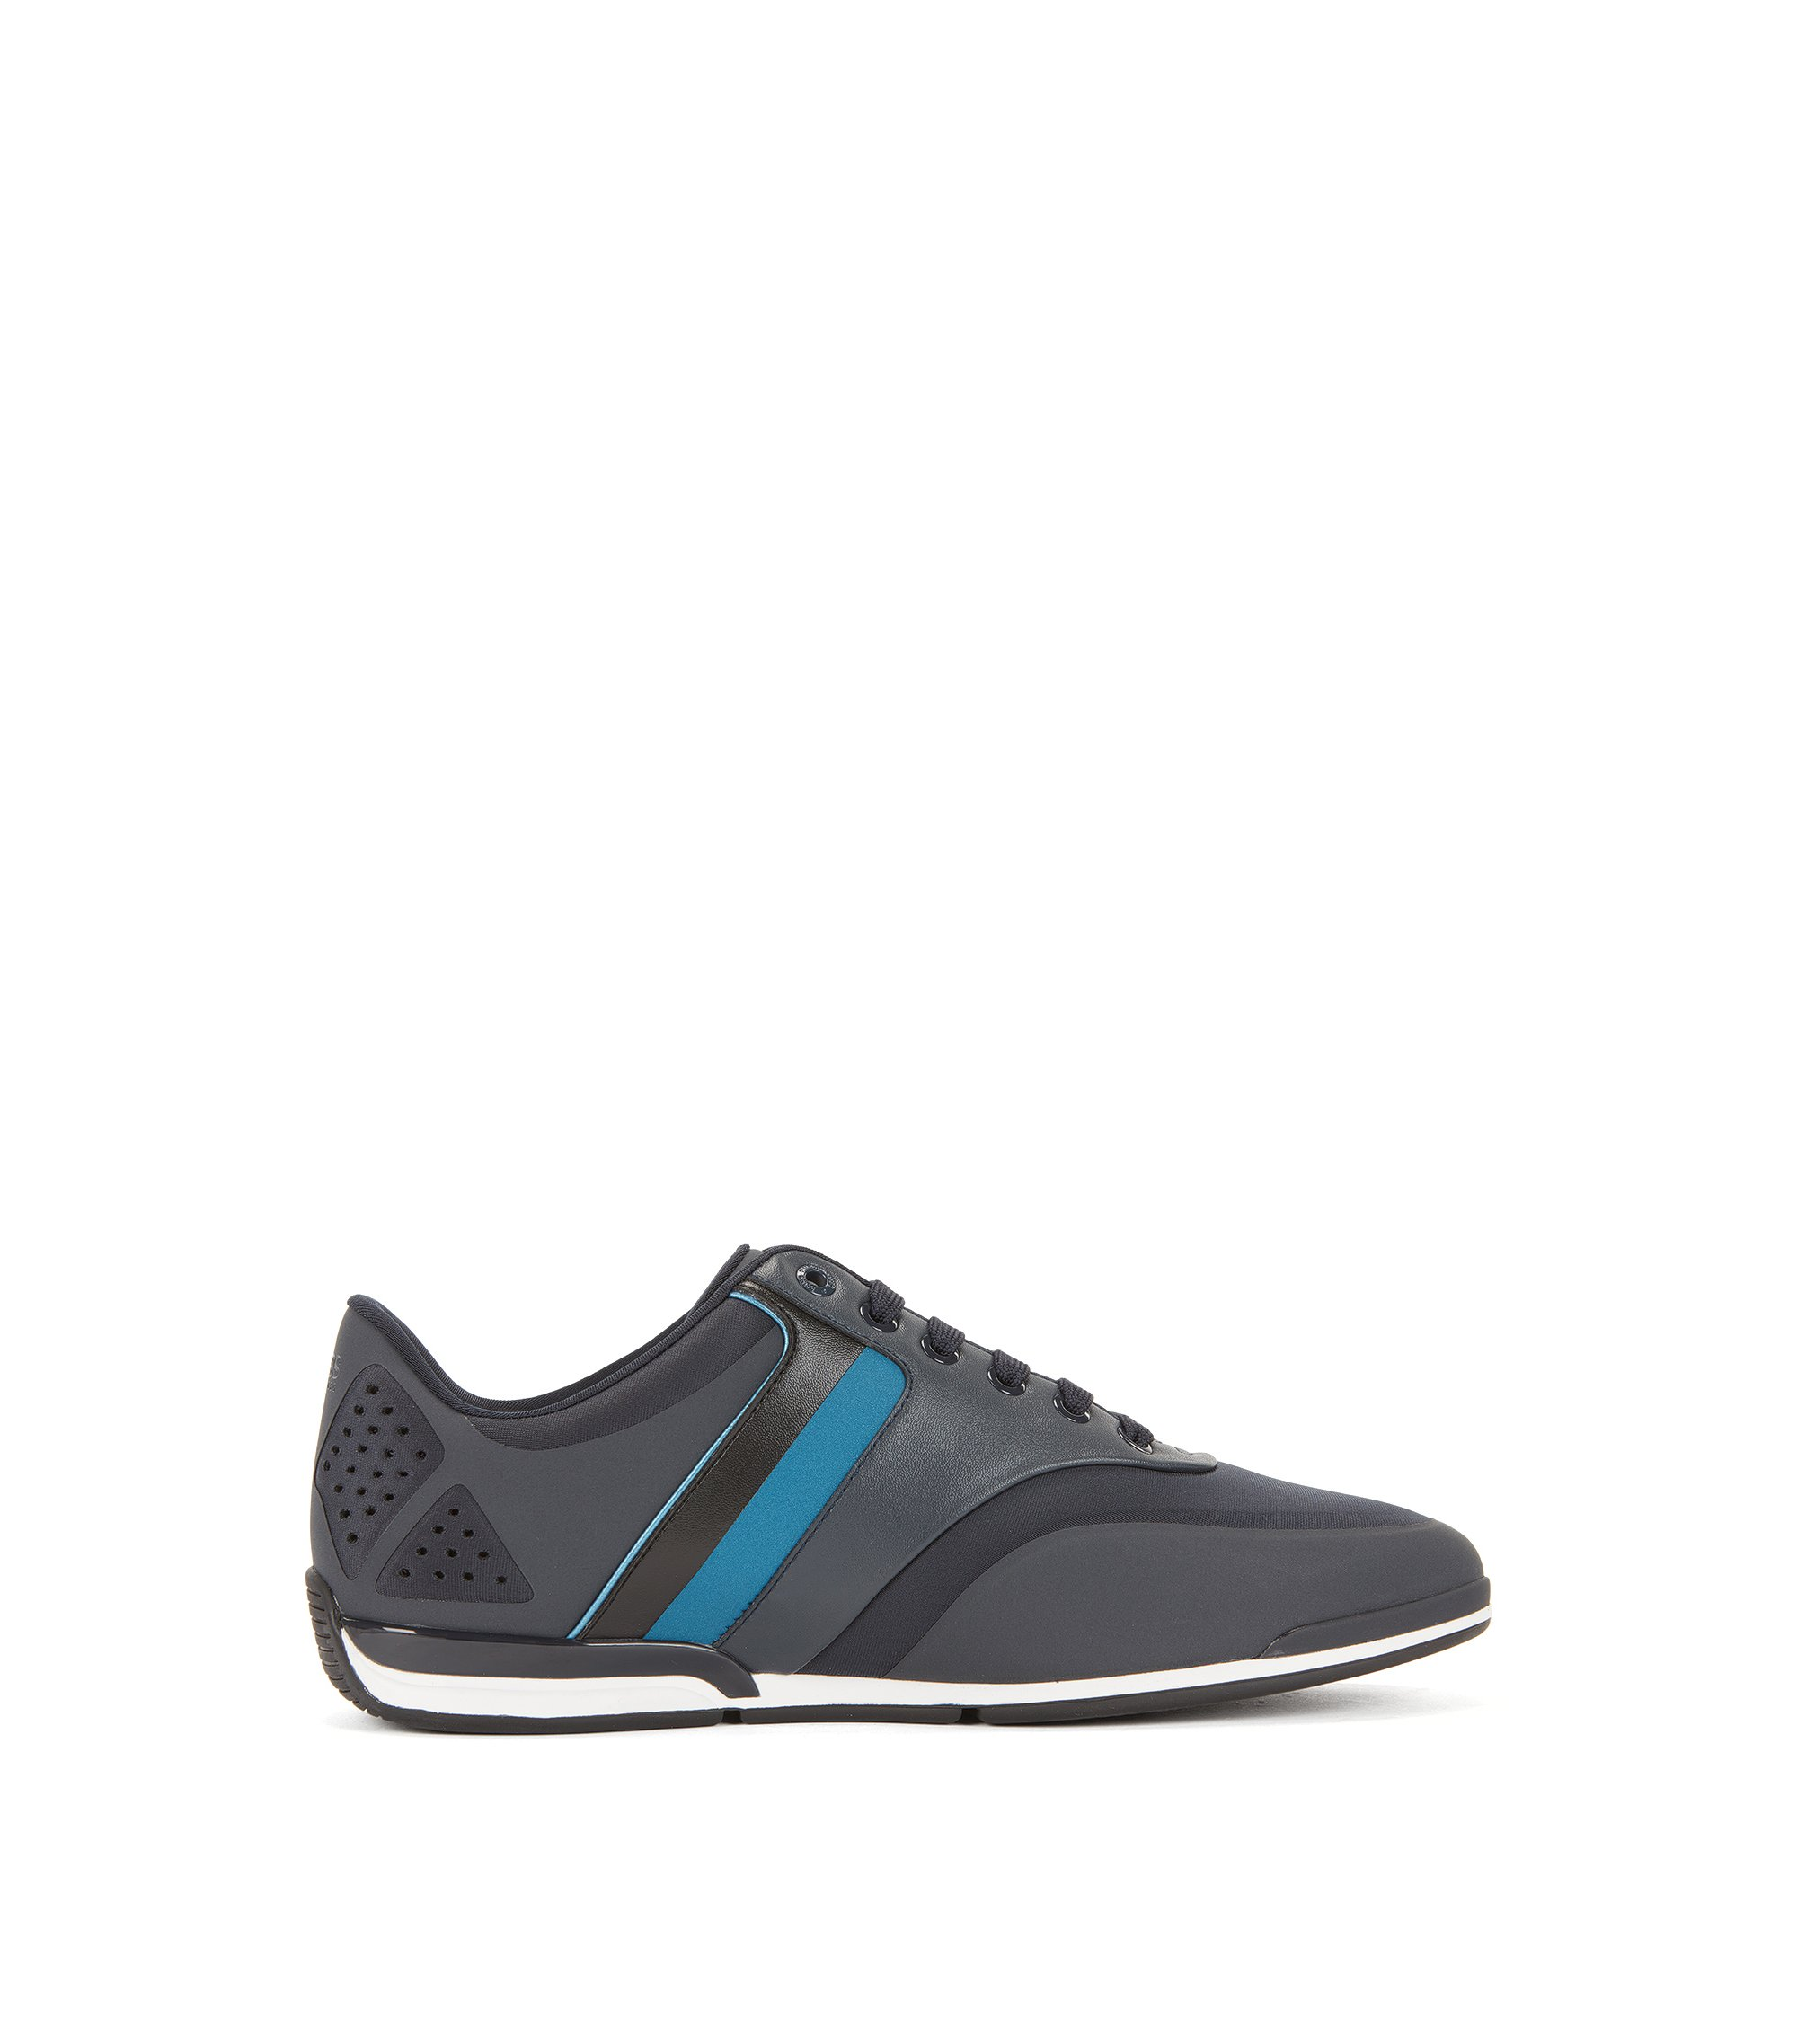 Vegan Leather Sneaker | Saturn Lowp Neo, Dark Blue